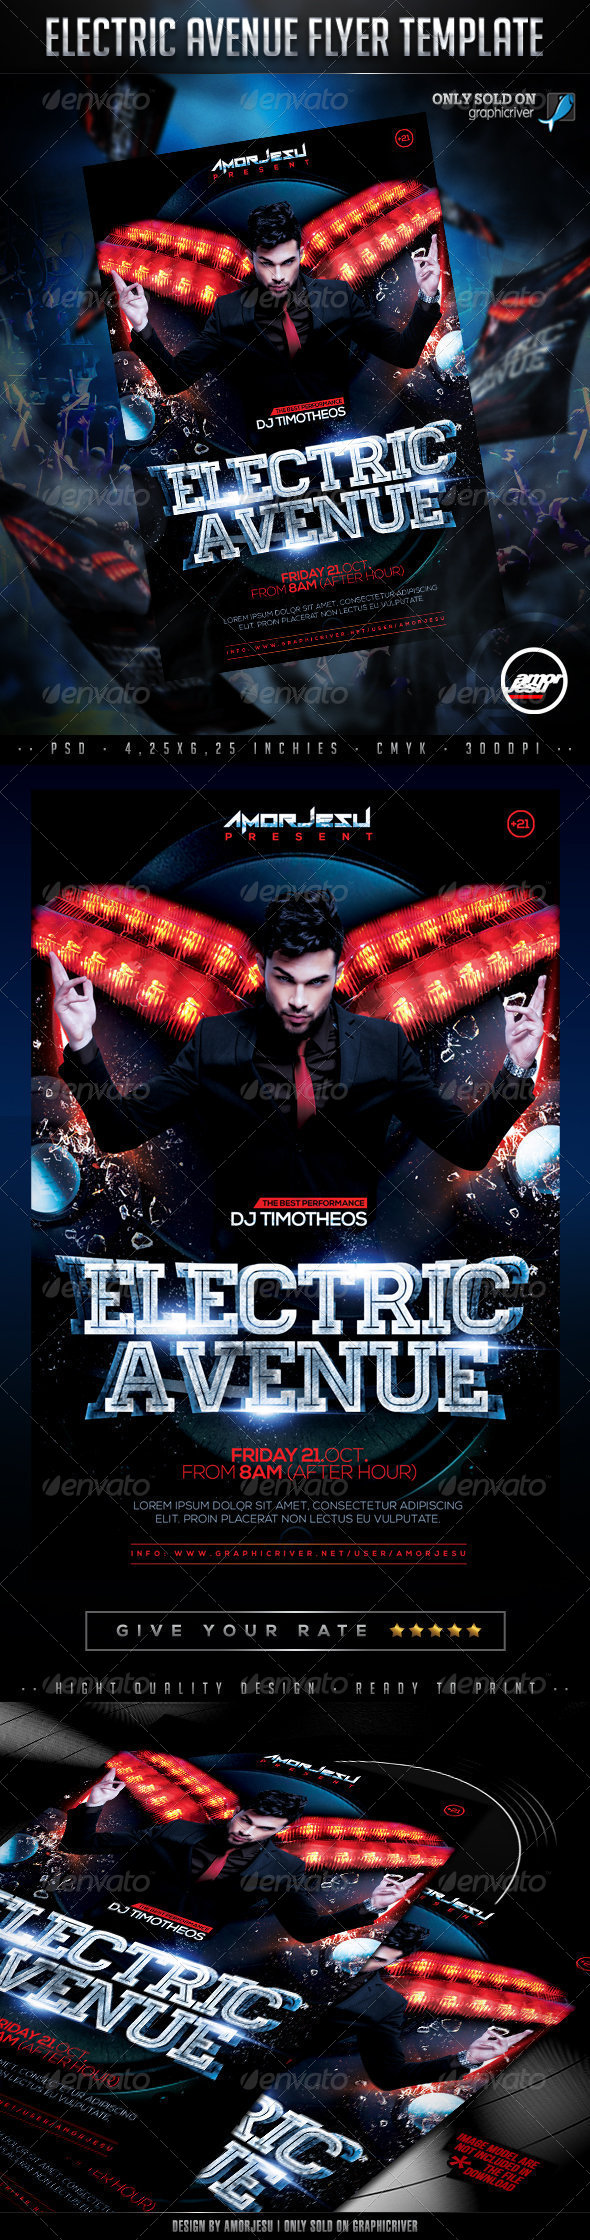 Electric Avenue Flyer Template - Clubs & Parties Events